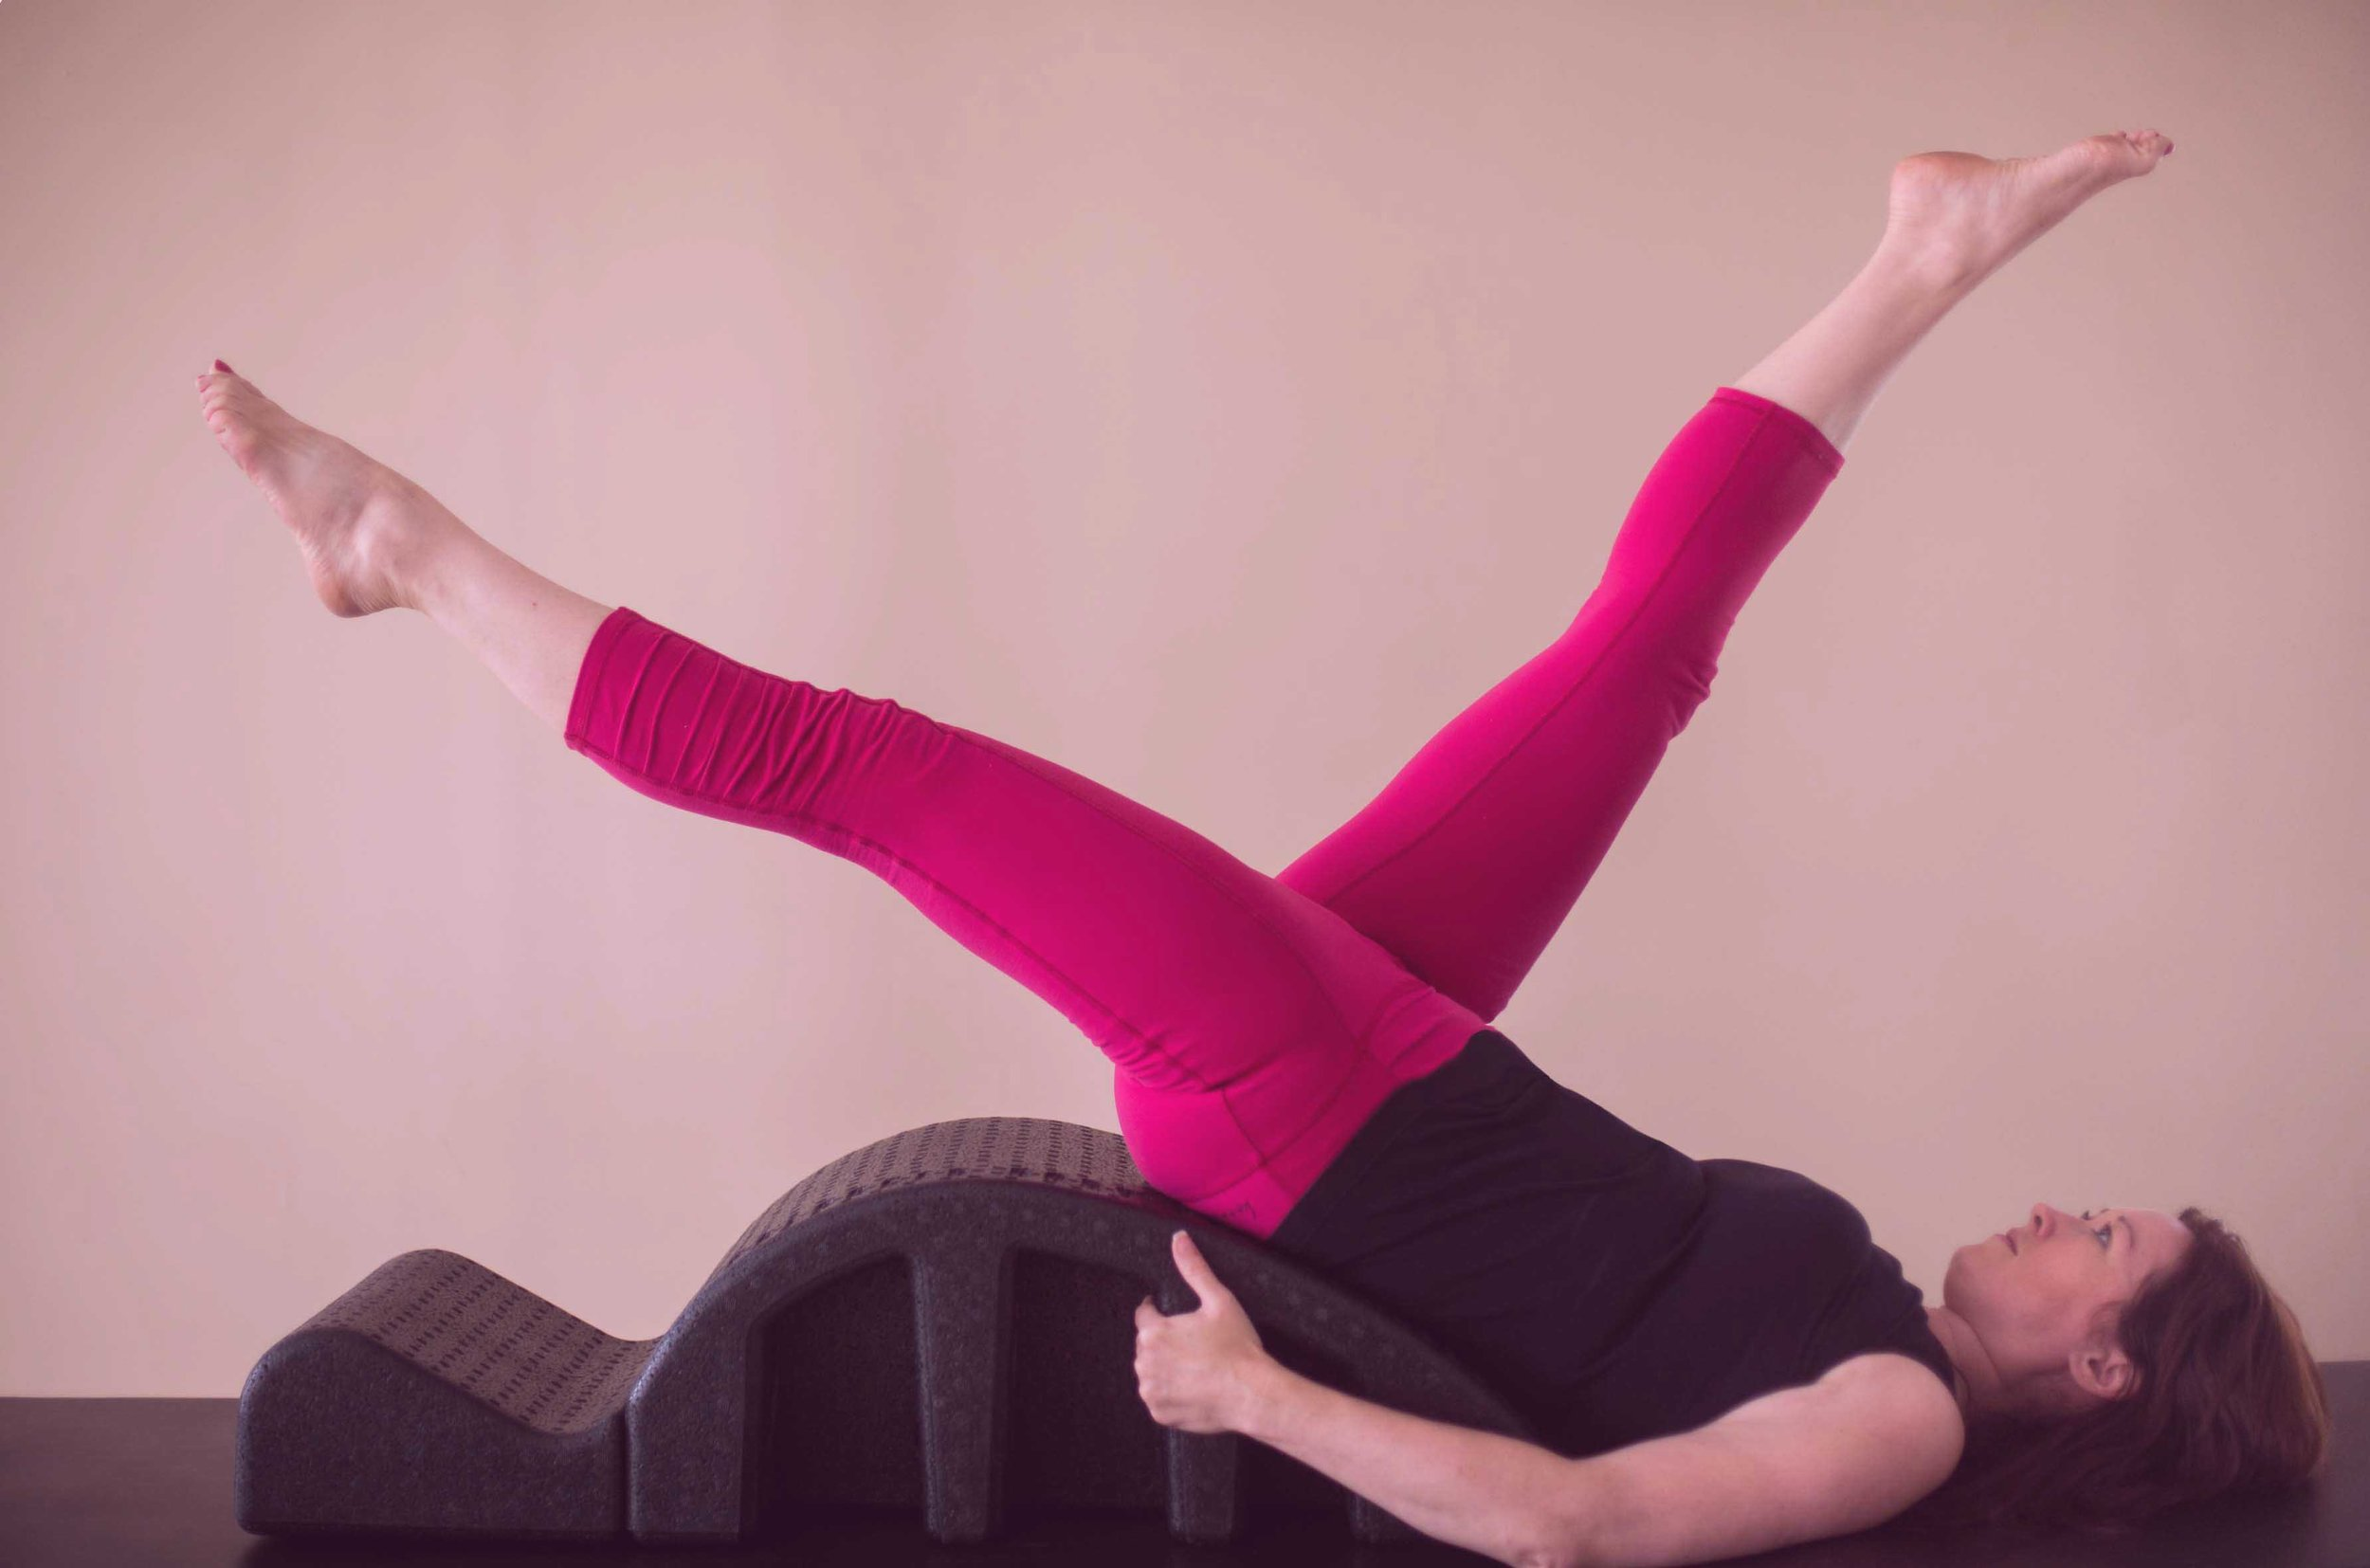 The arc barrel offers a way to actively support a client in positions that might otherwise be out of reach, opening through the torso to allow for a deeper and stronger muscle activation. In addition to support, the arc barrel can also create more challenge in an exercise. The support and challenge this piece creates provides a full body workout.